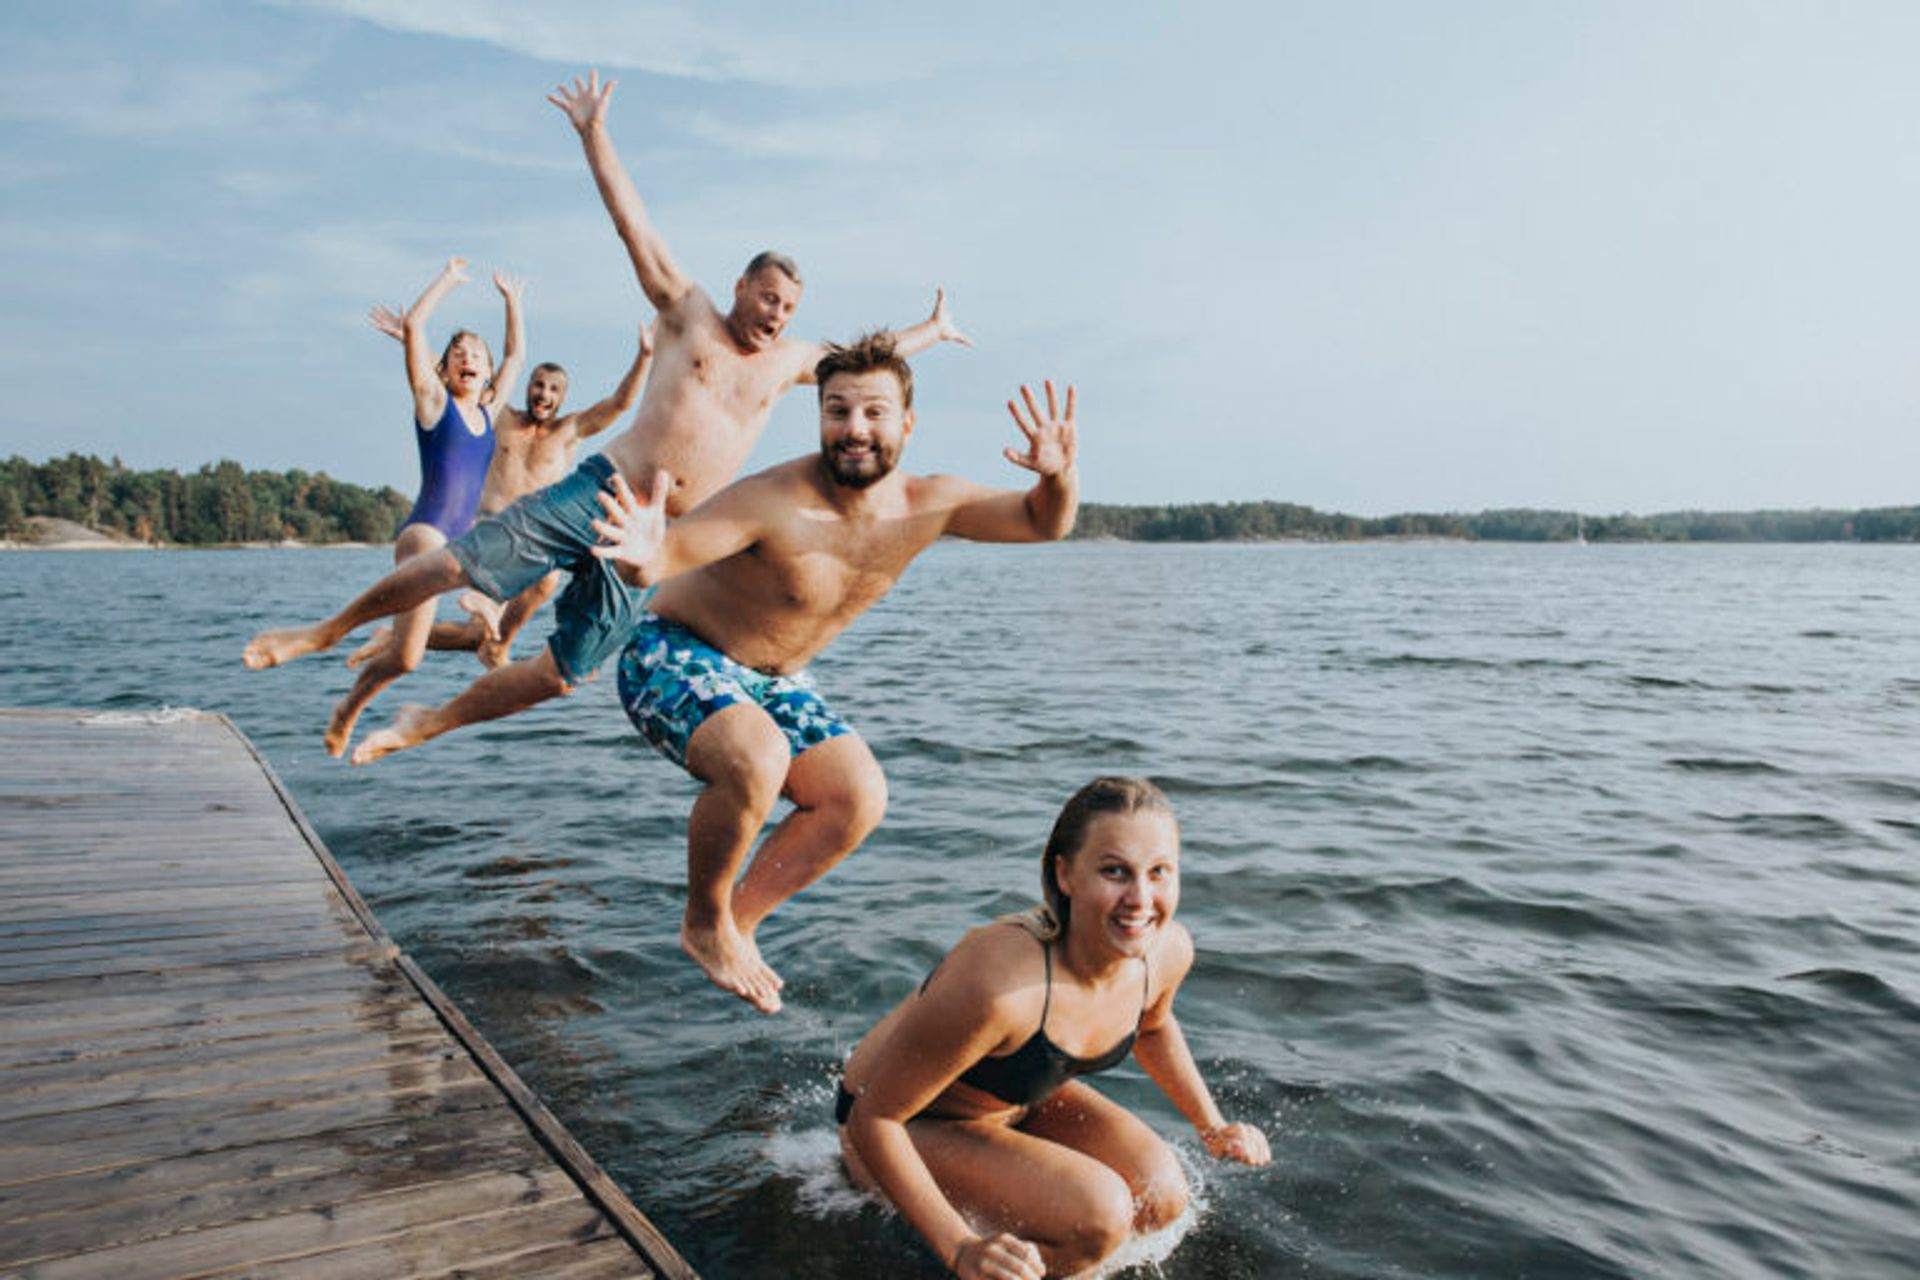 People jumping into a lake from a wooden jetty.